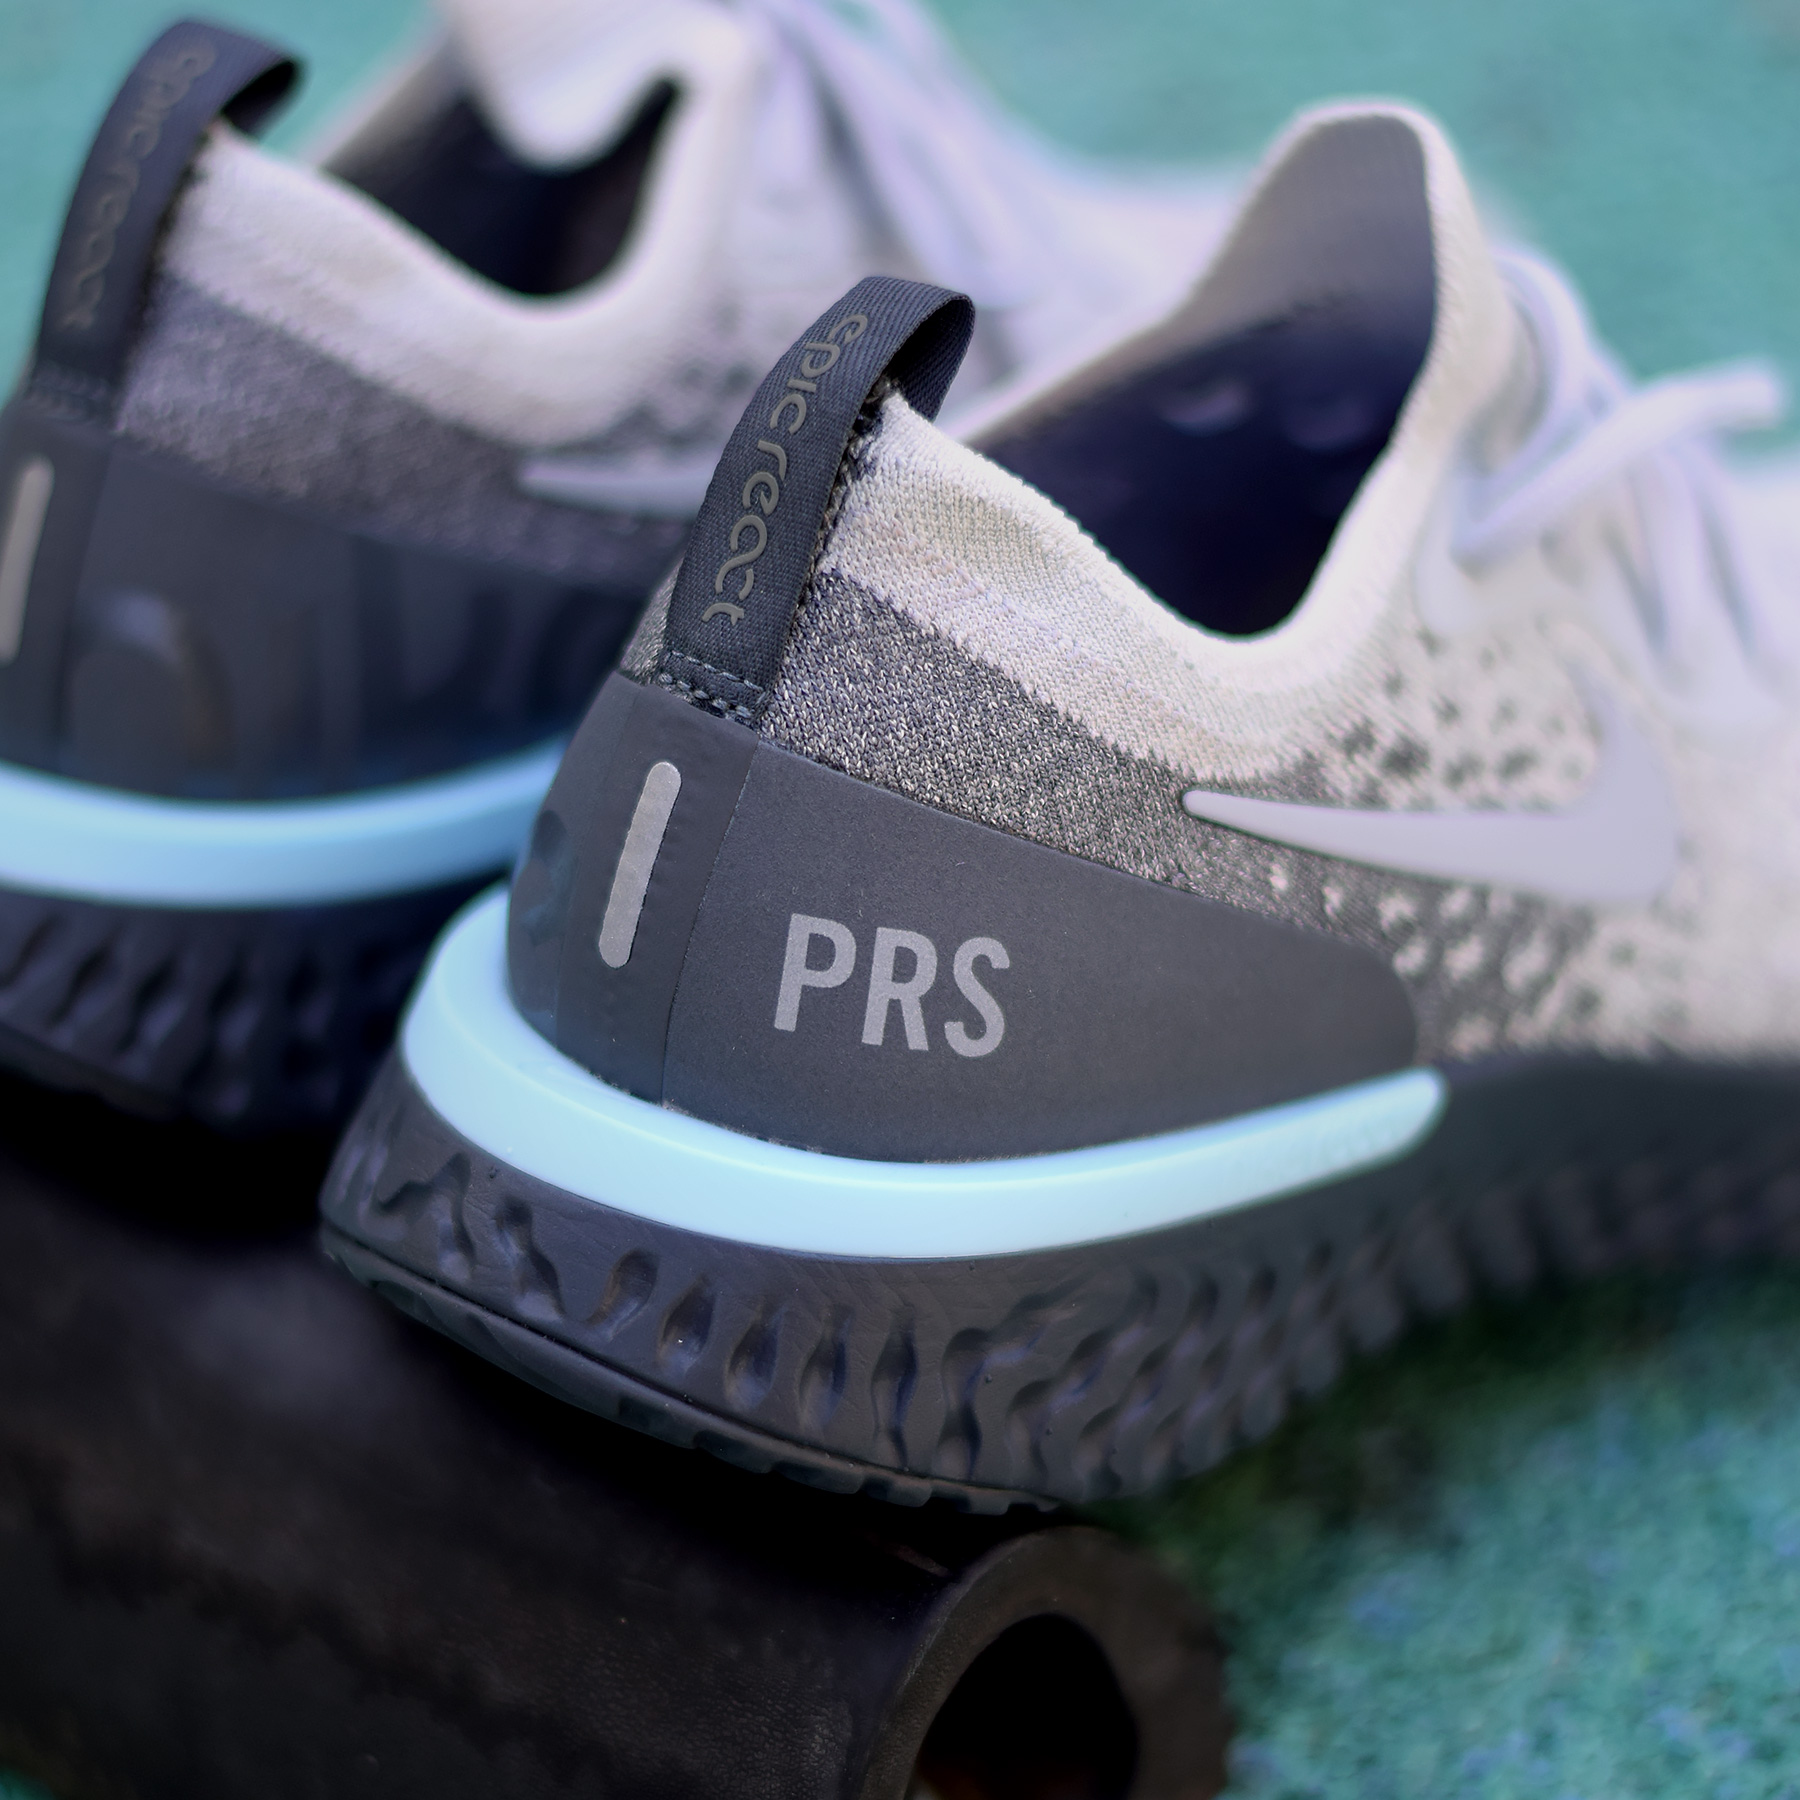 0db70086e3b39 Nike Epic React Flyknit PARIS - There is no finish line - Sneakers.fr